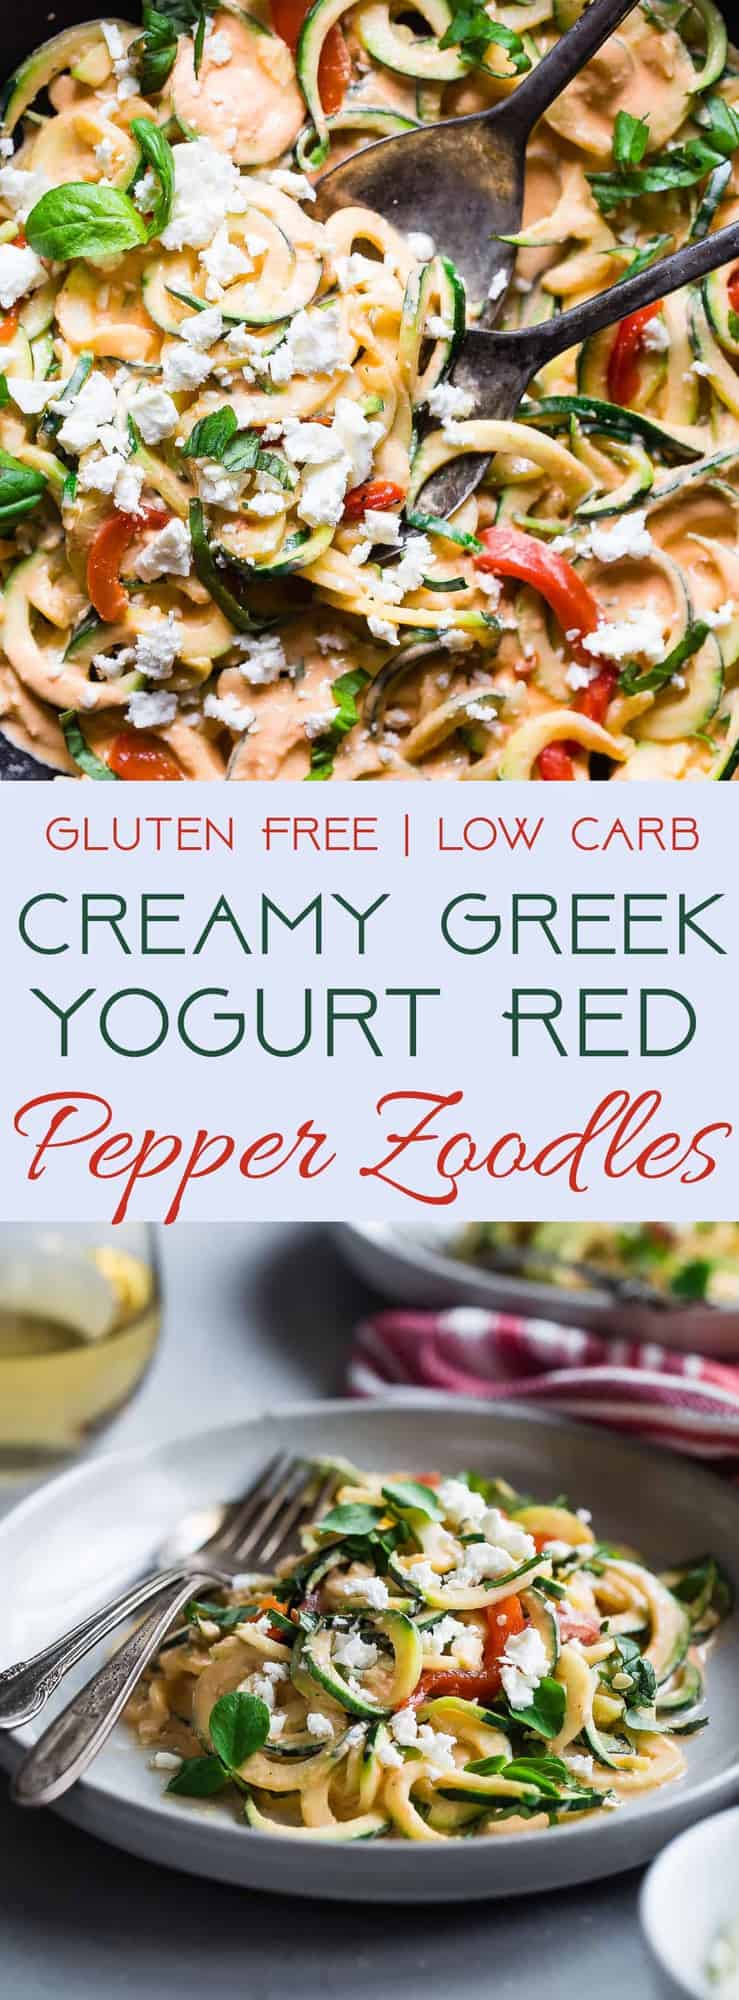 Zucchini Noodles with Roasted Red Pepper Greek Yogurt Sauce - zucchini noodles are covered with a creamy, low carb roasted red pepper sauce for an easy, protein packed, meatless dinner, that is under 300 calories and that the whole family will love! | #Foodfaithfitness | #Lowcarb #Glutenfree #Keto #Greekyogurt #ZucchiniNoodles